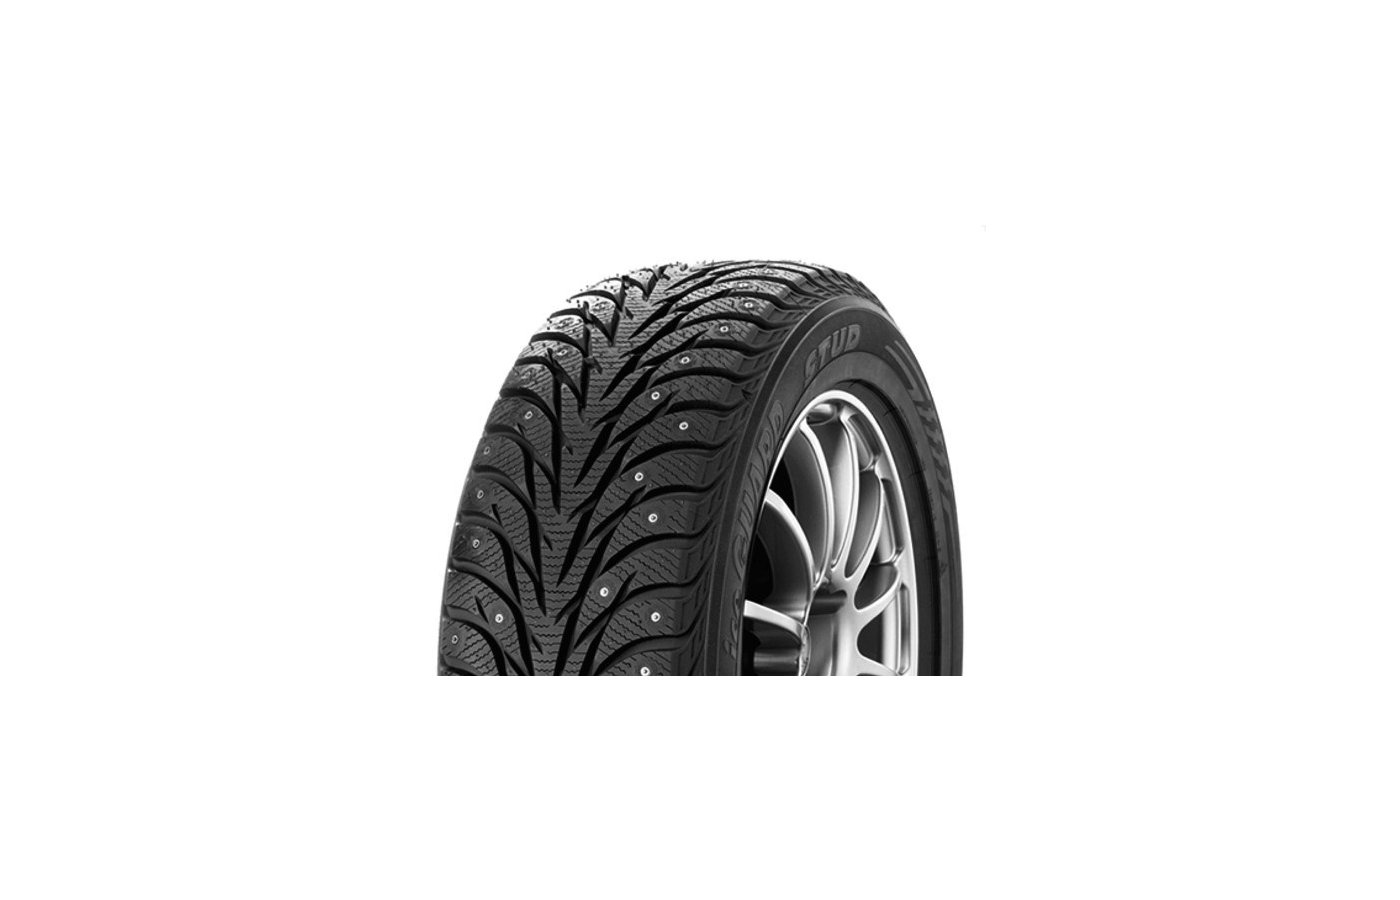 Шина Yokohama Ice Guard IG35 Plus 265/50 R20 TL 111T шип